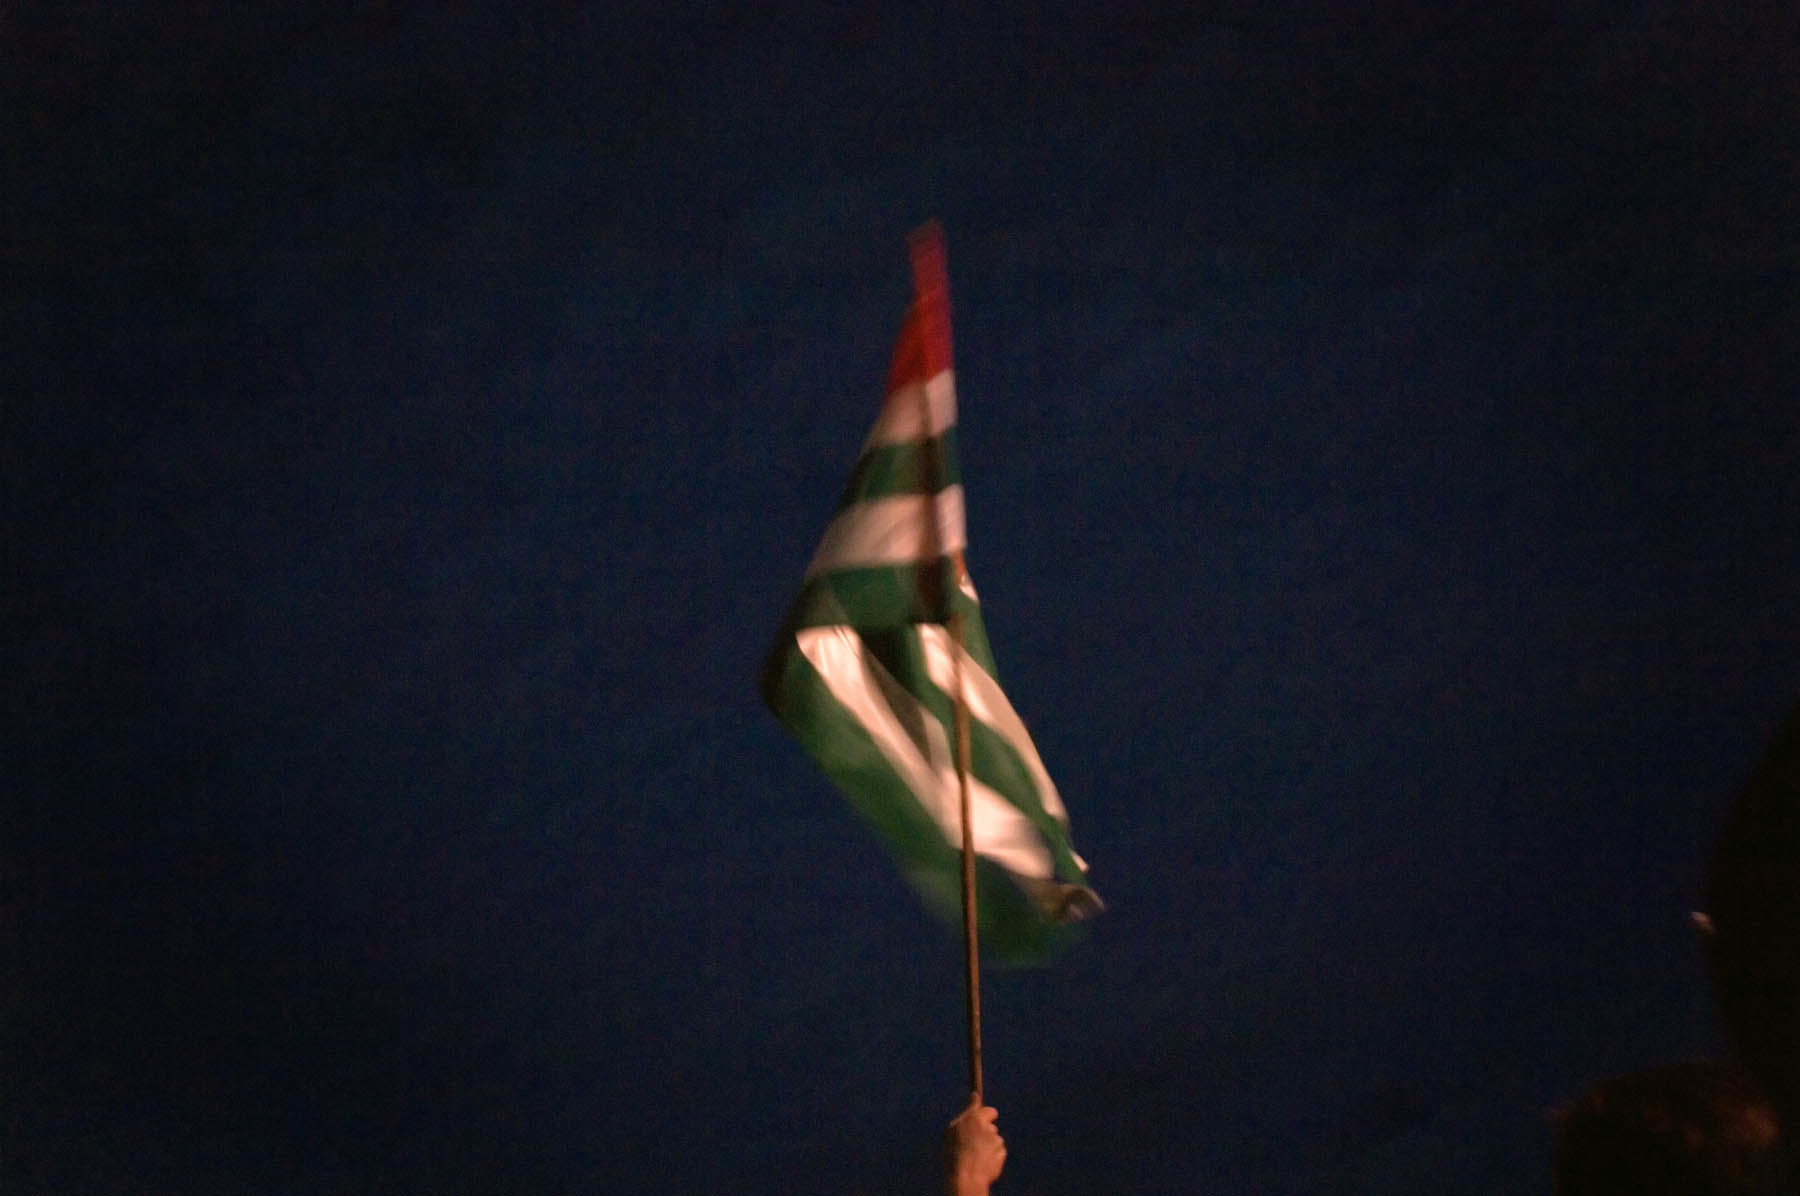 The national flag is waved by a solo carrier in the middle of the evening.